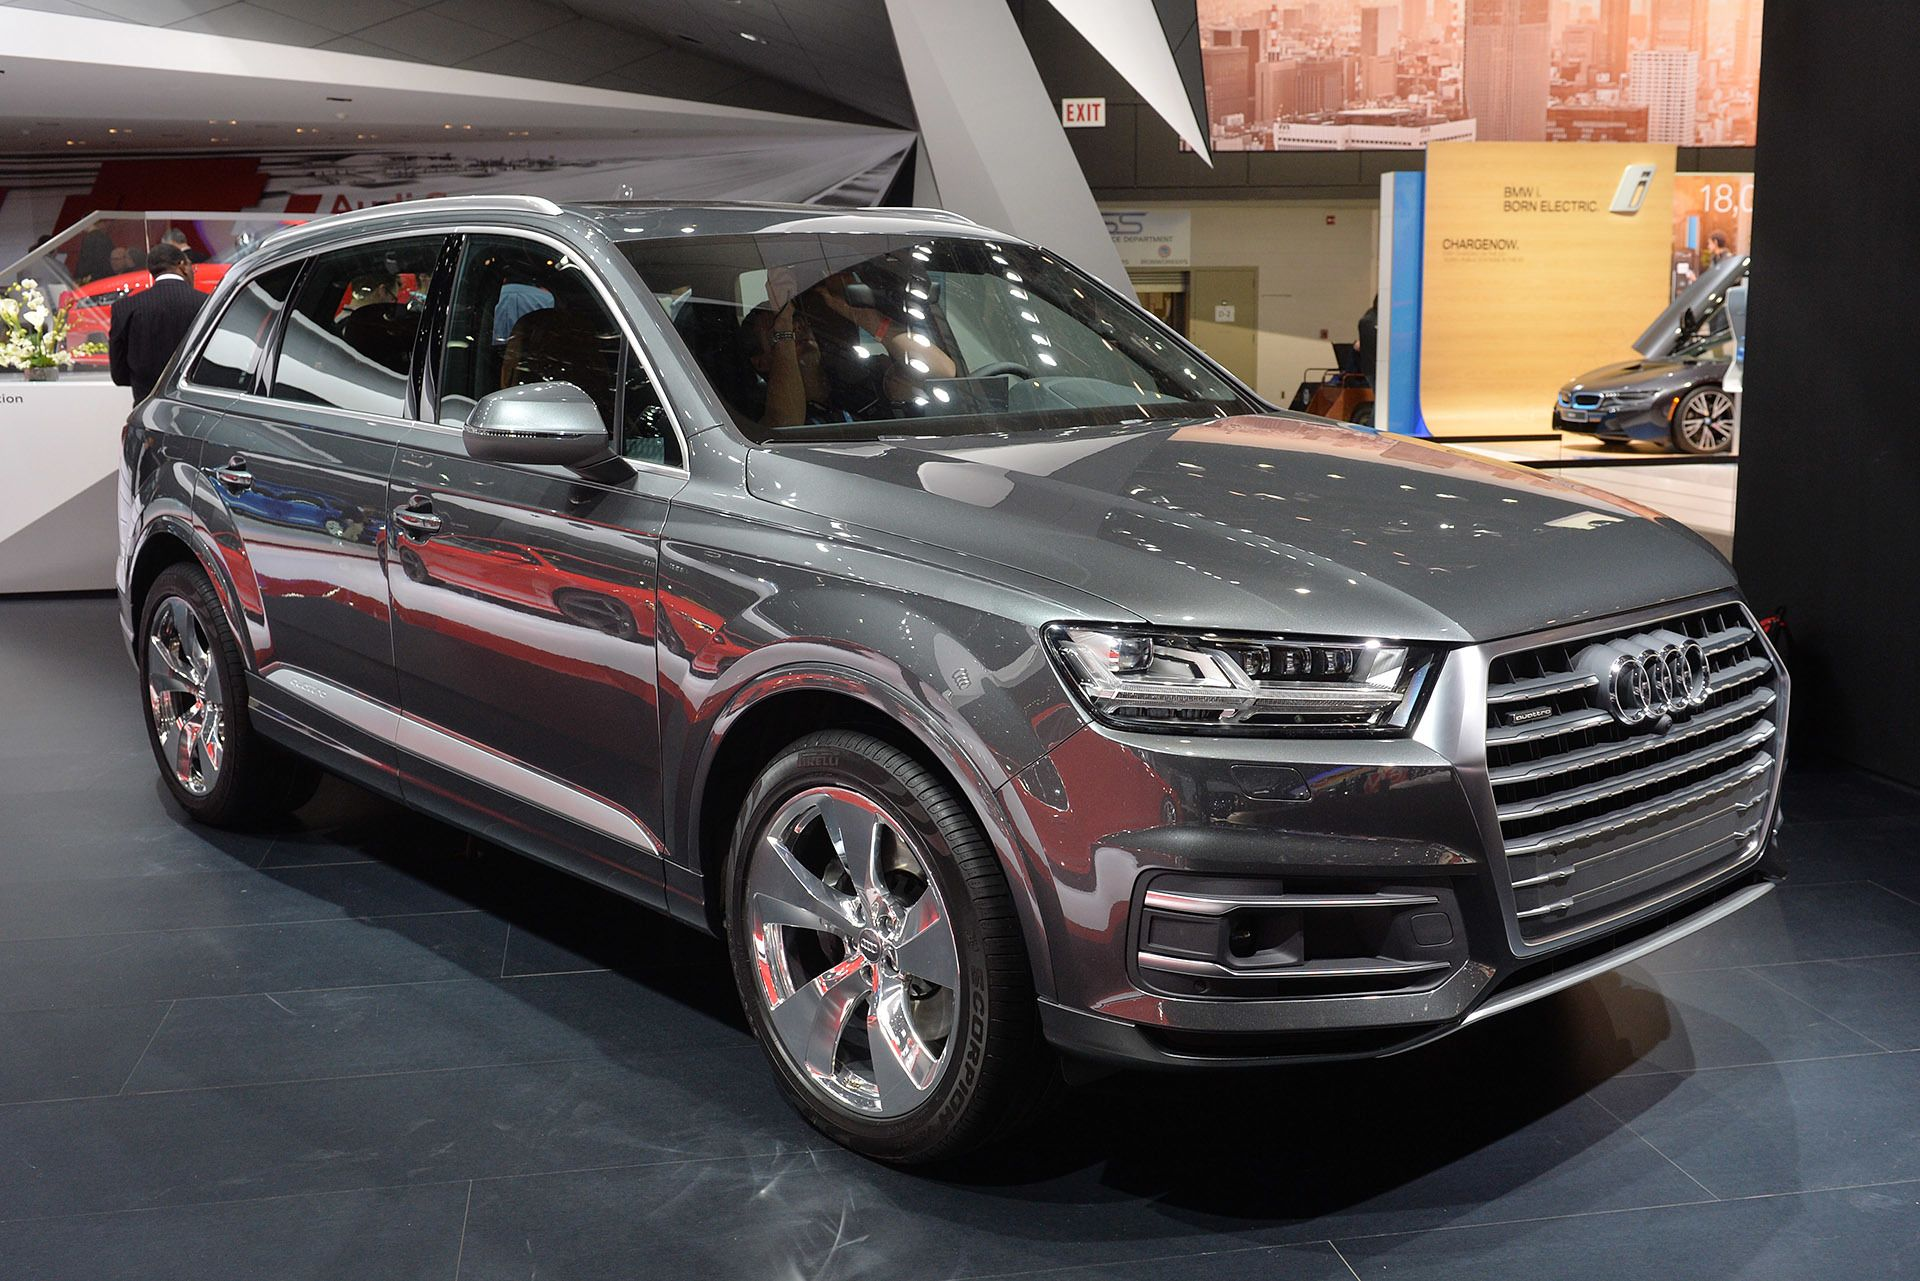 2019 Audi Q7 Specs Photos Prices Latest Models Sports Car Audi